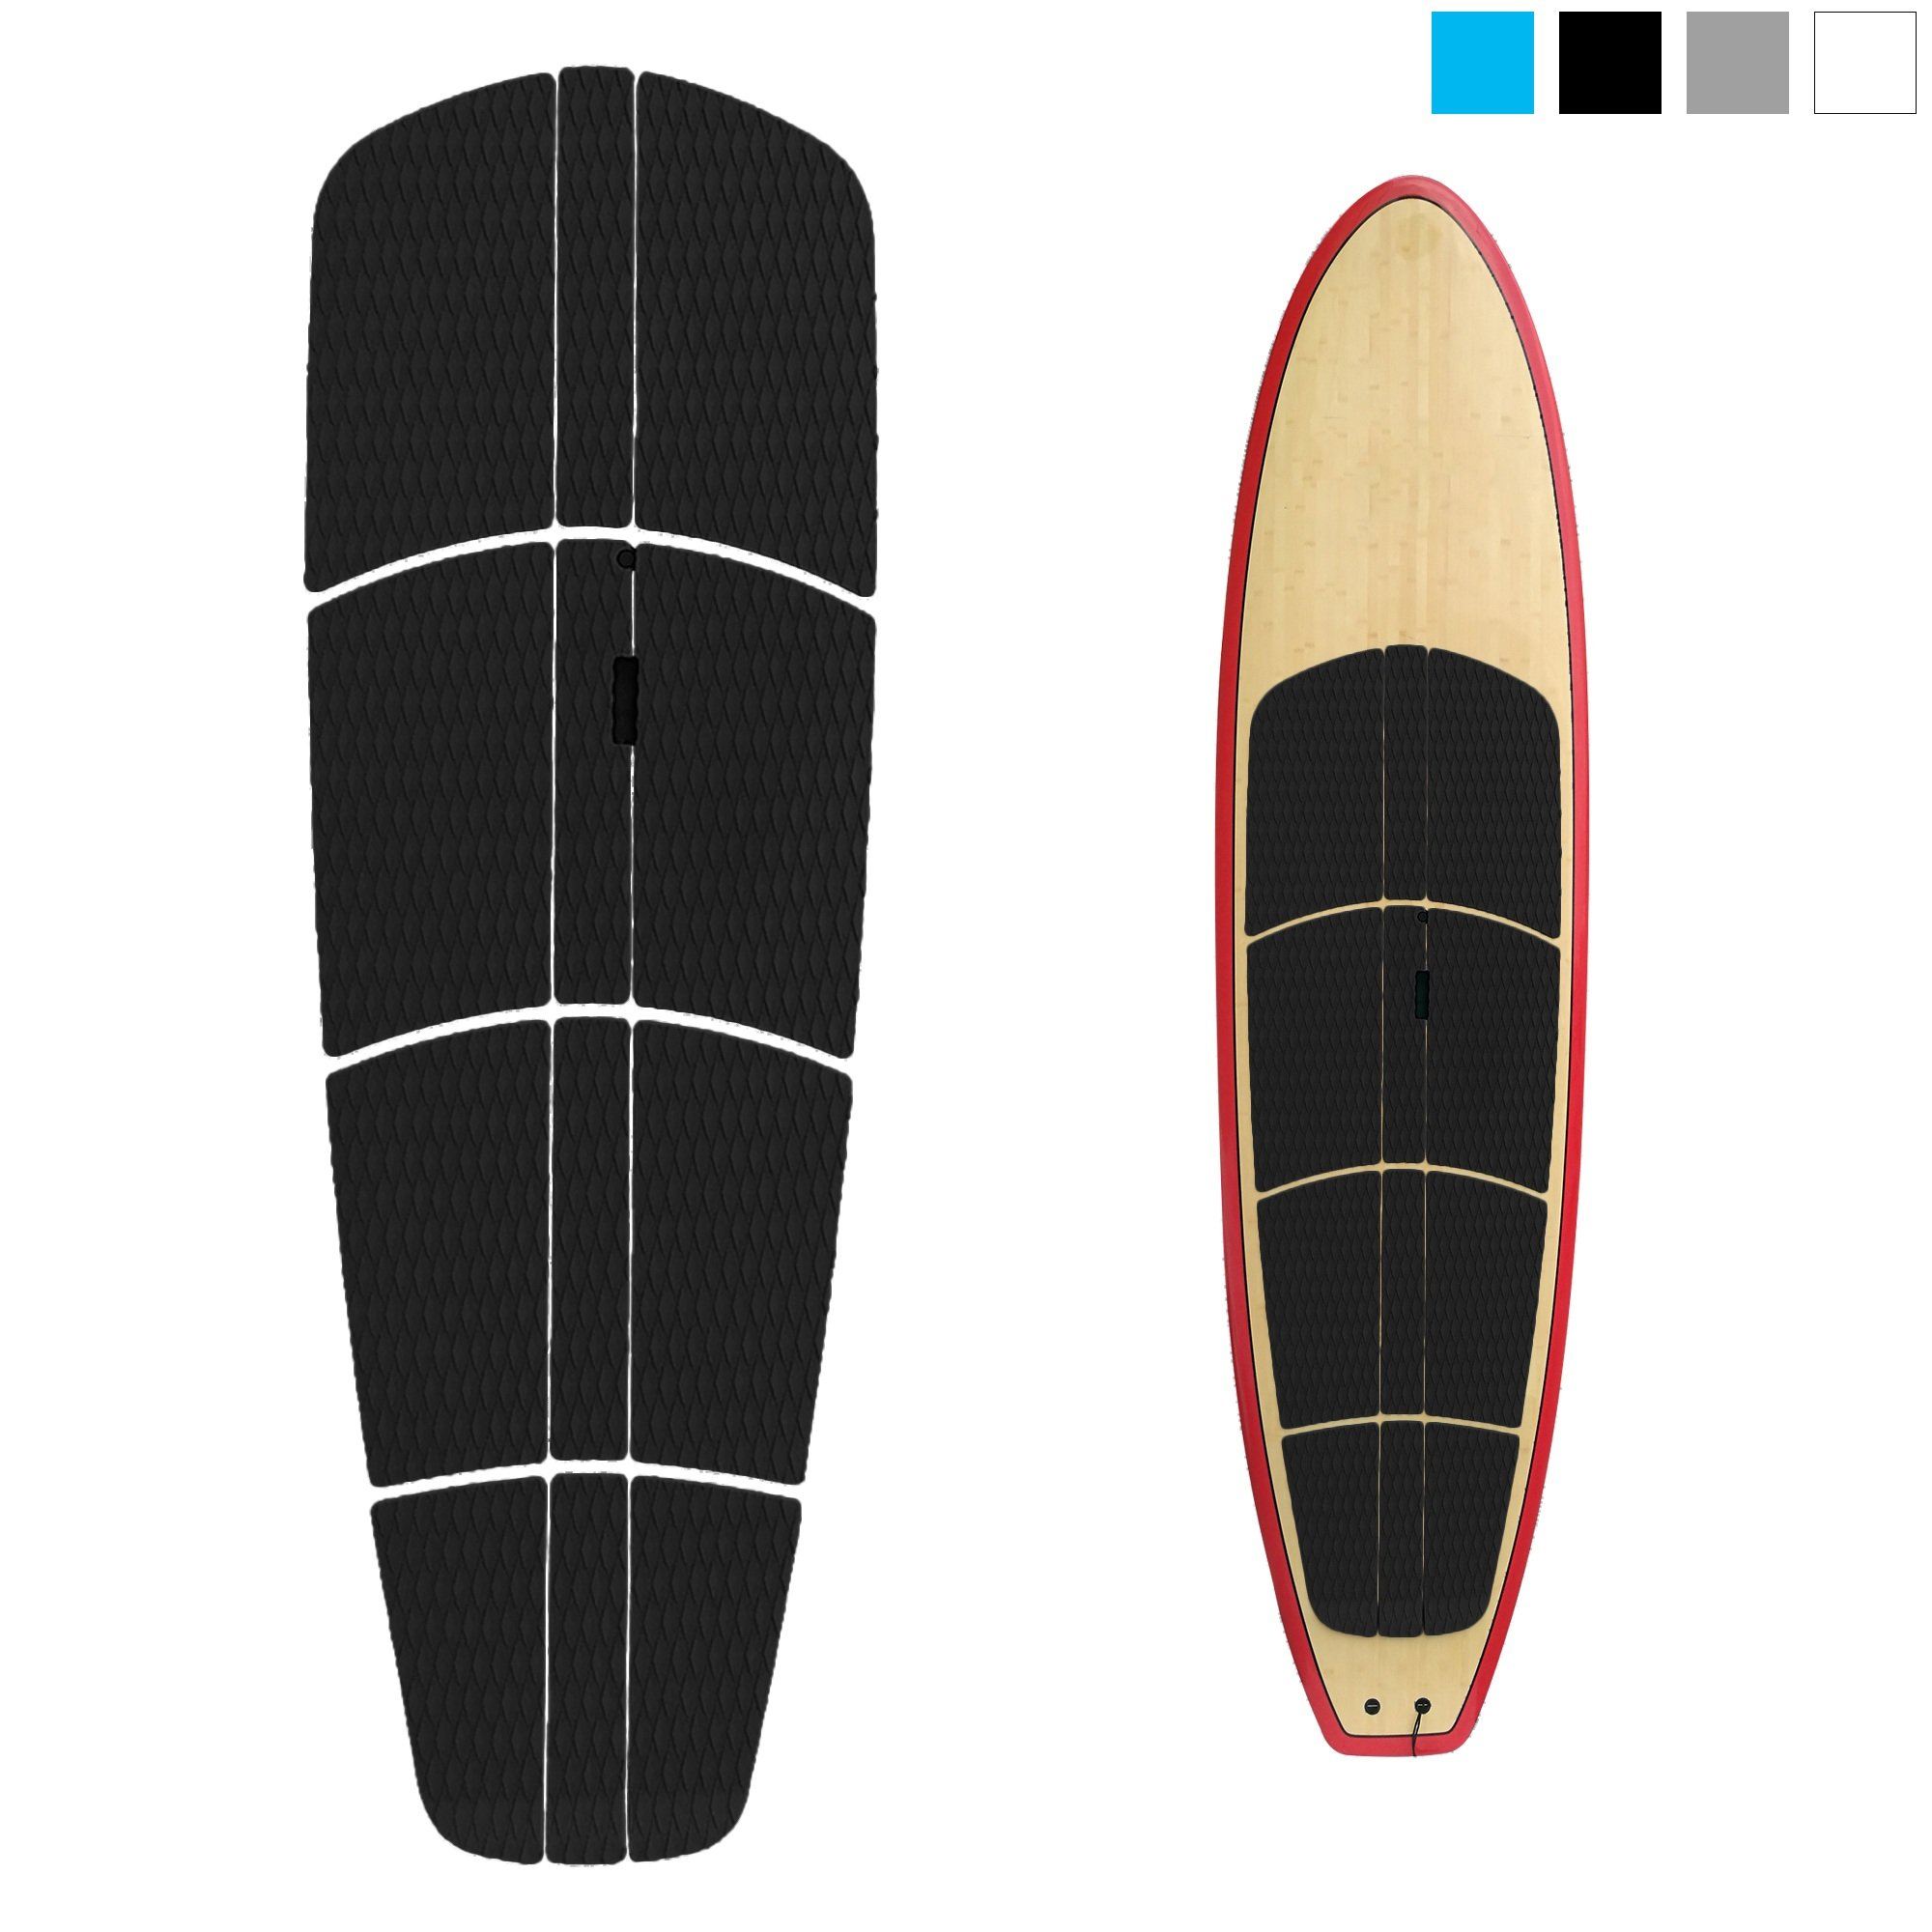 ABAHUB 12 Piece Surf SUP Deck Traction Pad Premium EVA with Tail Kicker 3M Adhesive for Paddleboard Black by ABAHUB